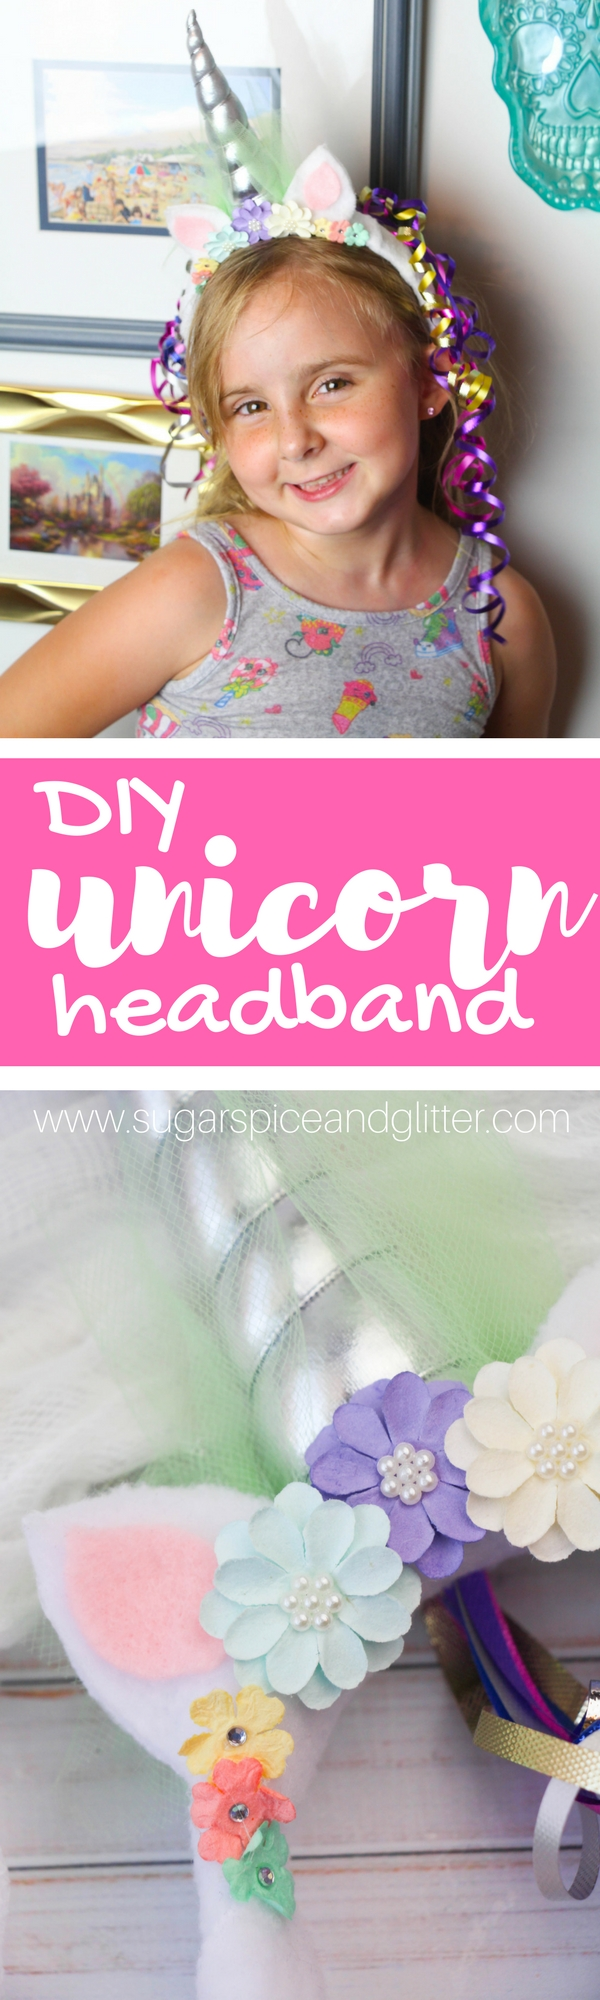 How cute is this Unicorn Headband kids can help make? Perfect for a DIY unicorn costume, a unicorn party idea or just a fun accessory for a unicorn-obsessed kid